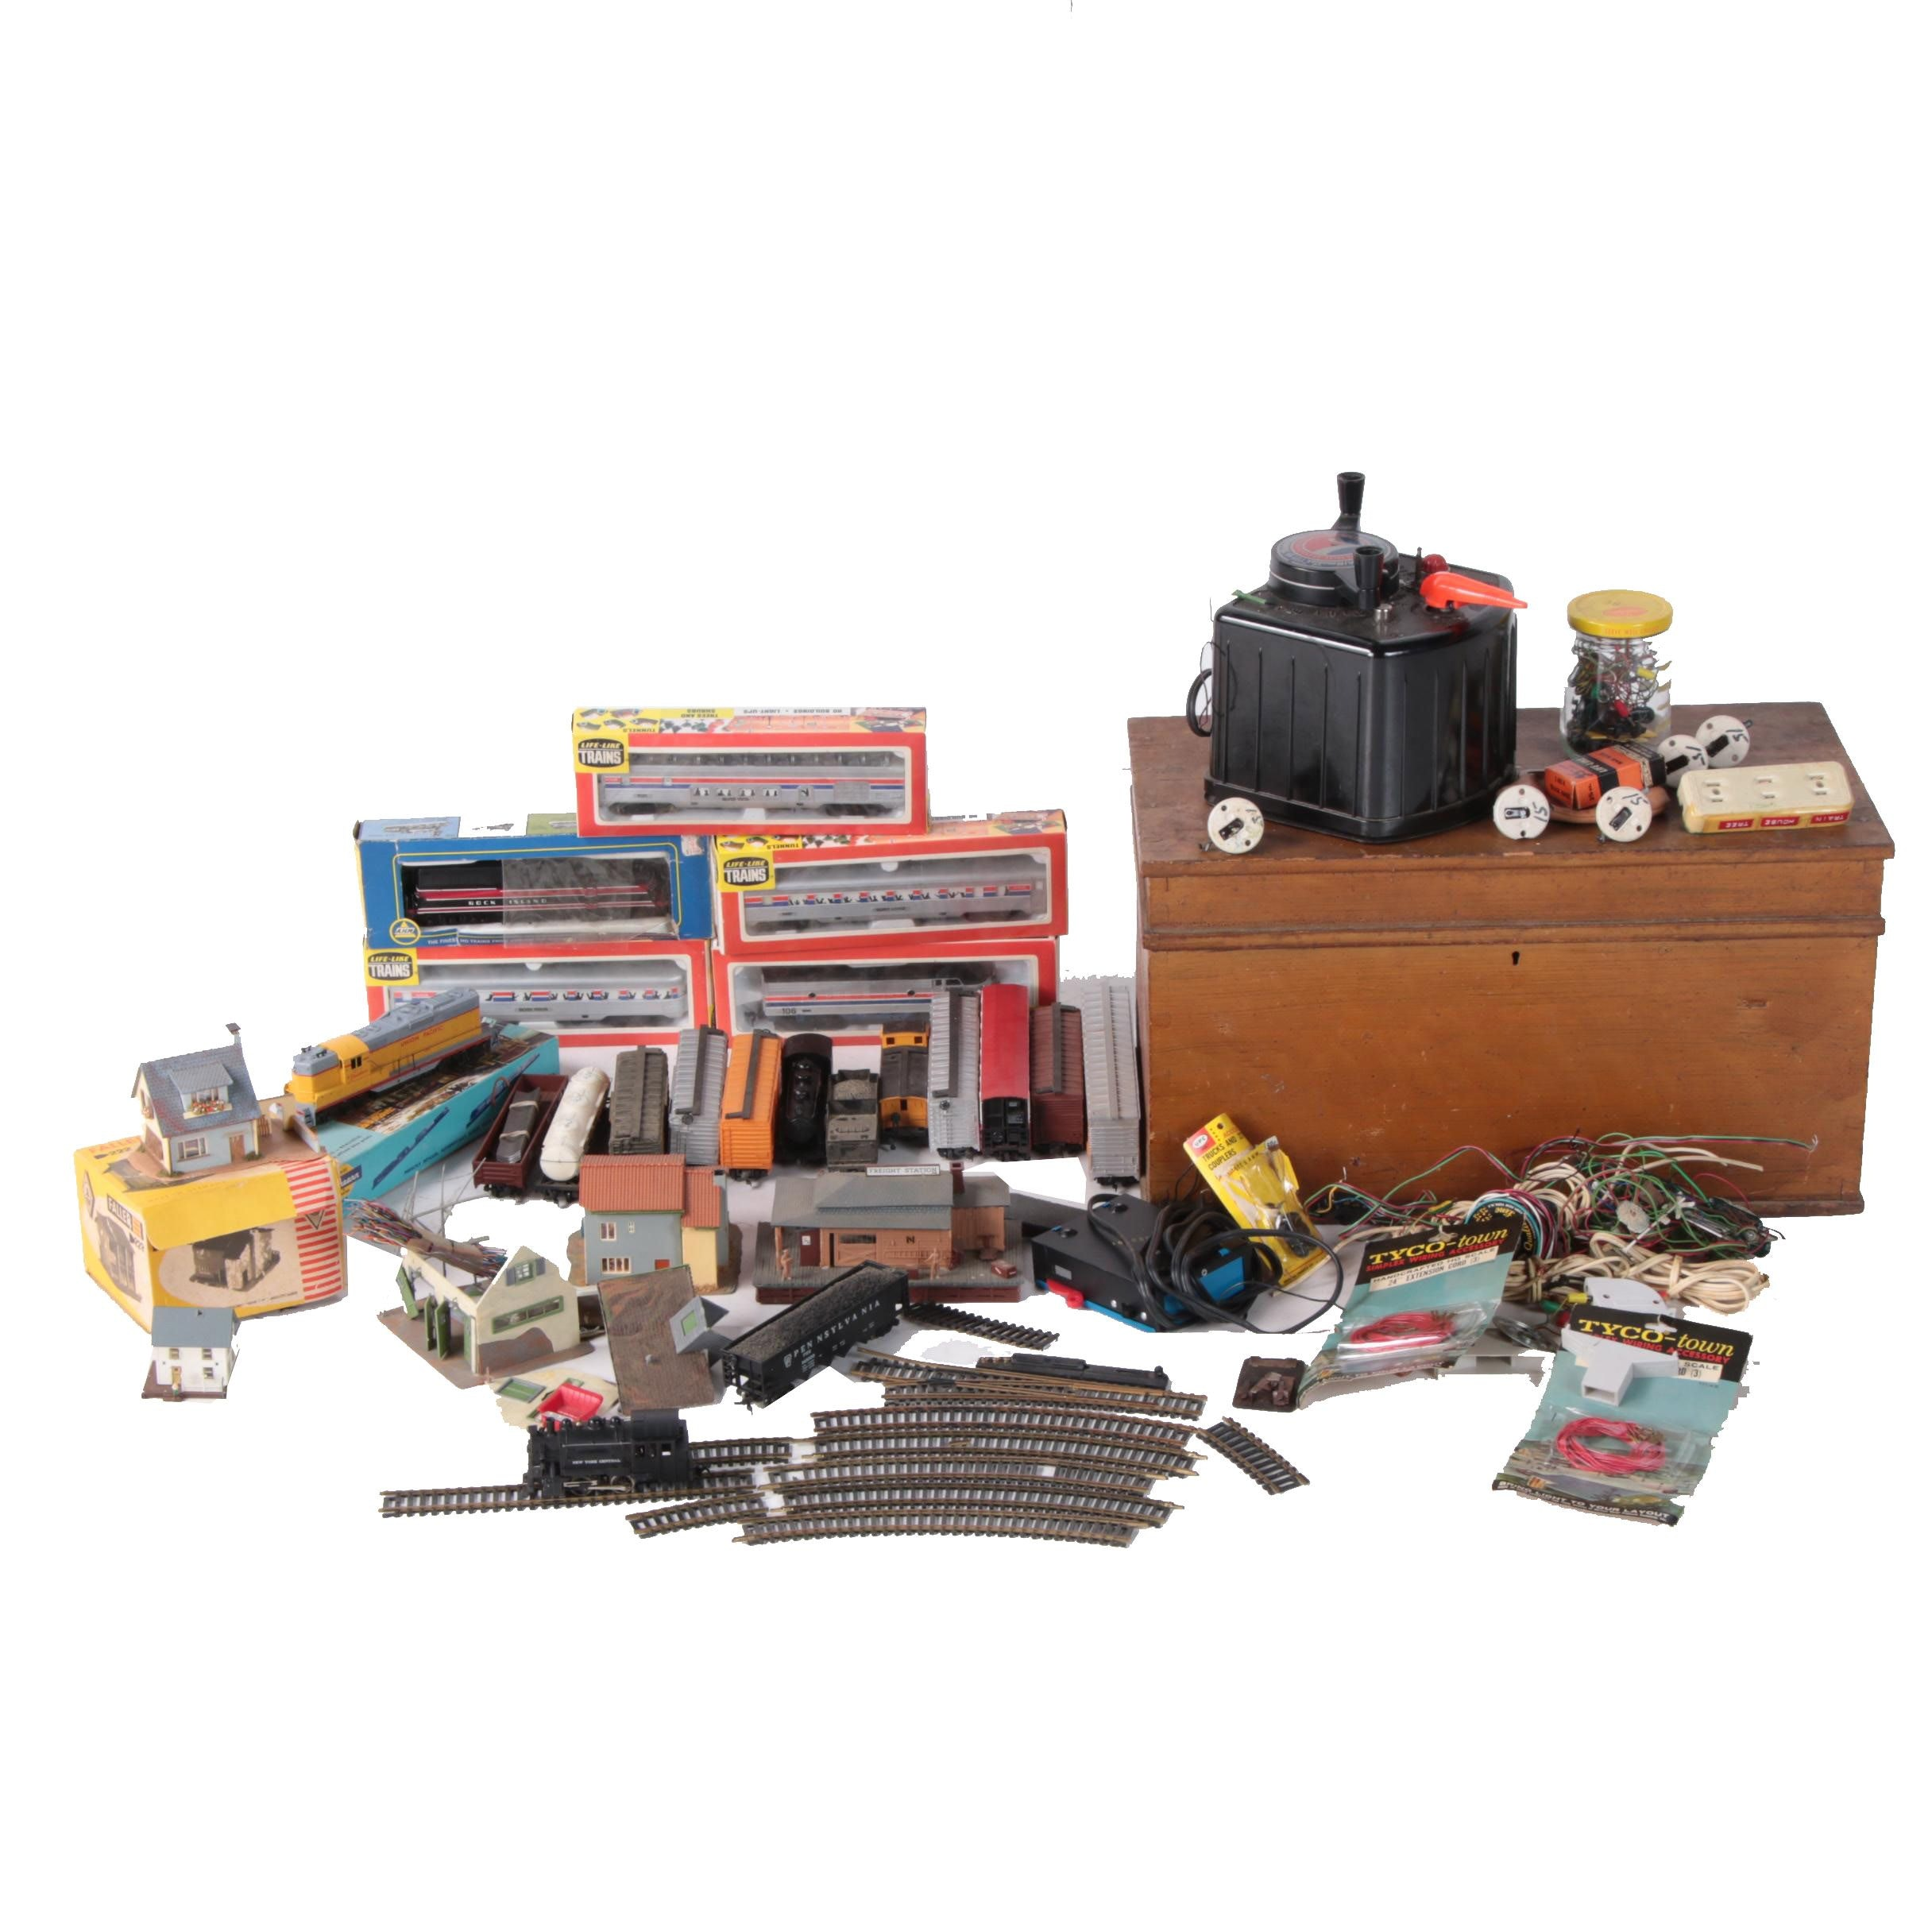 Miniature Scale Train Cars with Accessories including AHM and More